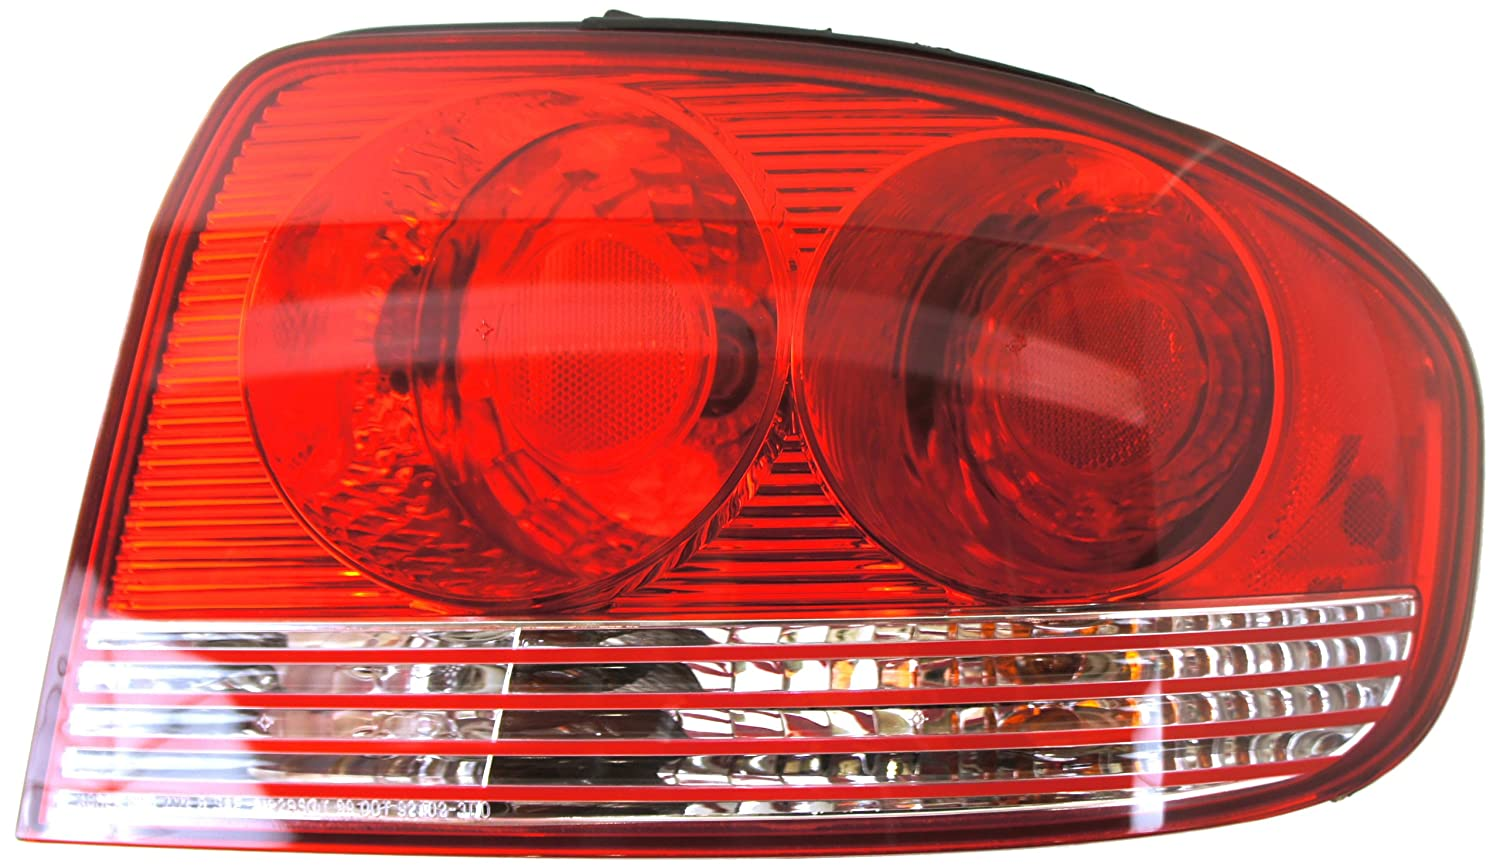 Genuine Hyundai Parts 92402-3D050 Passenger Side Taillight Assembly